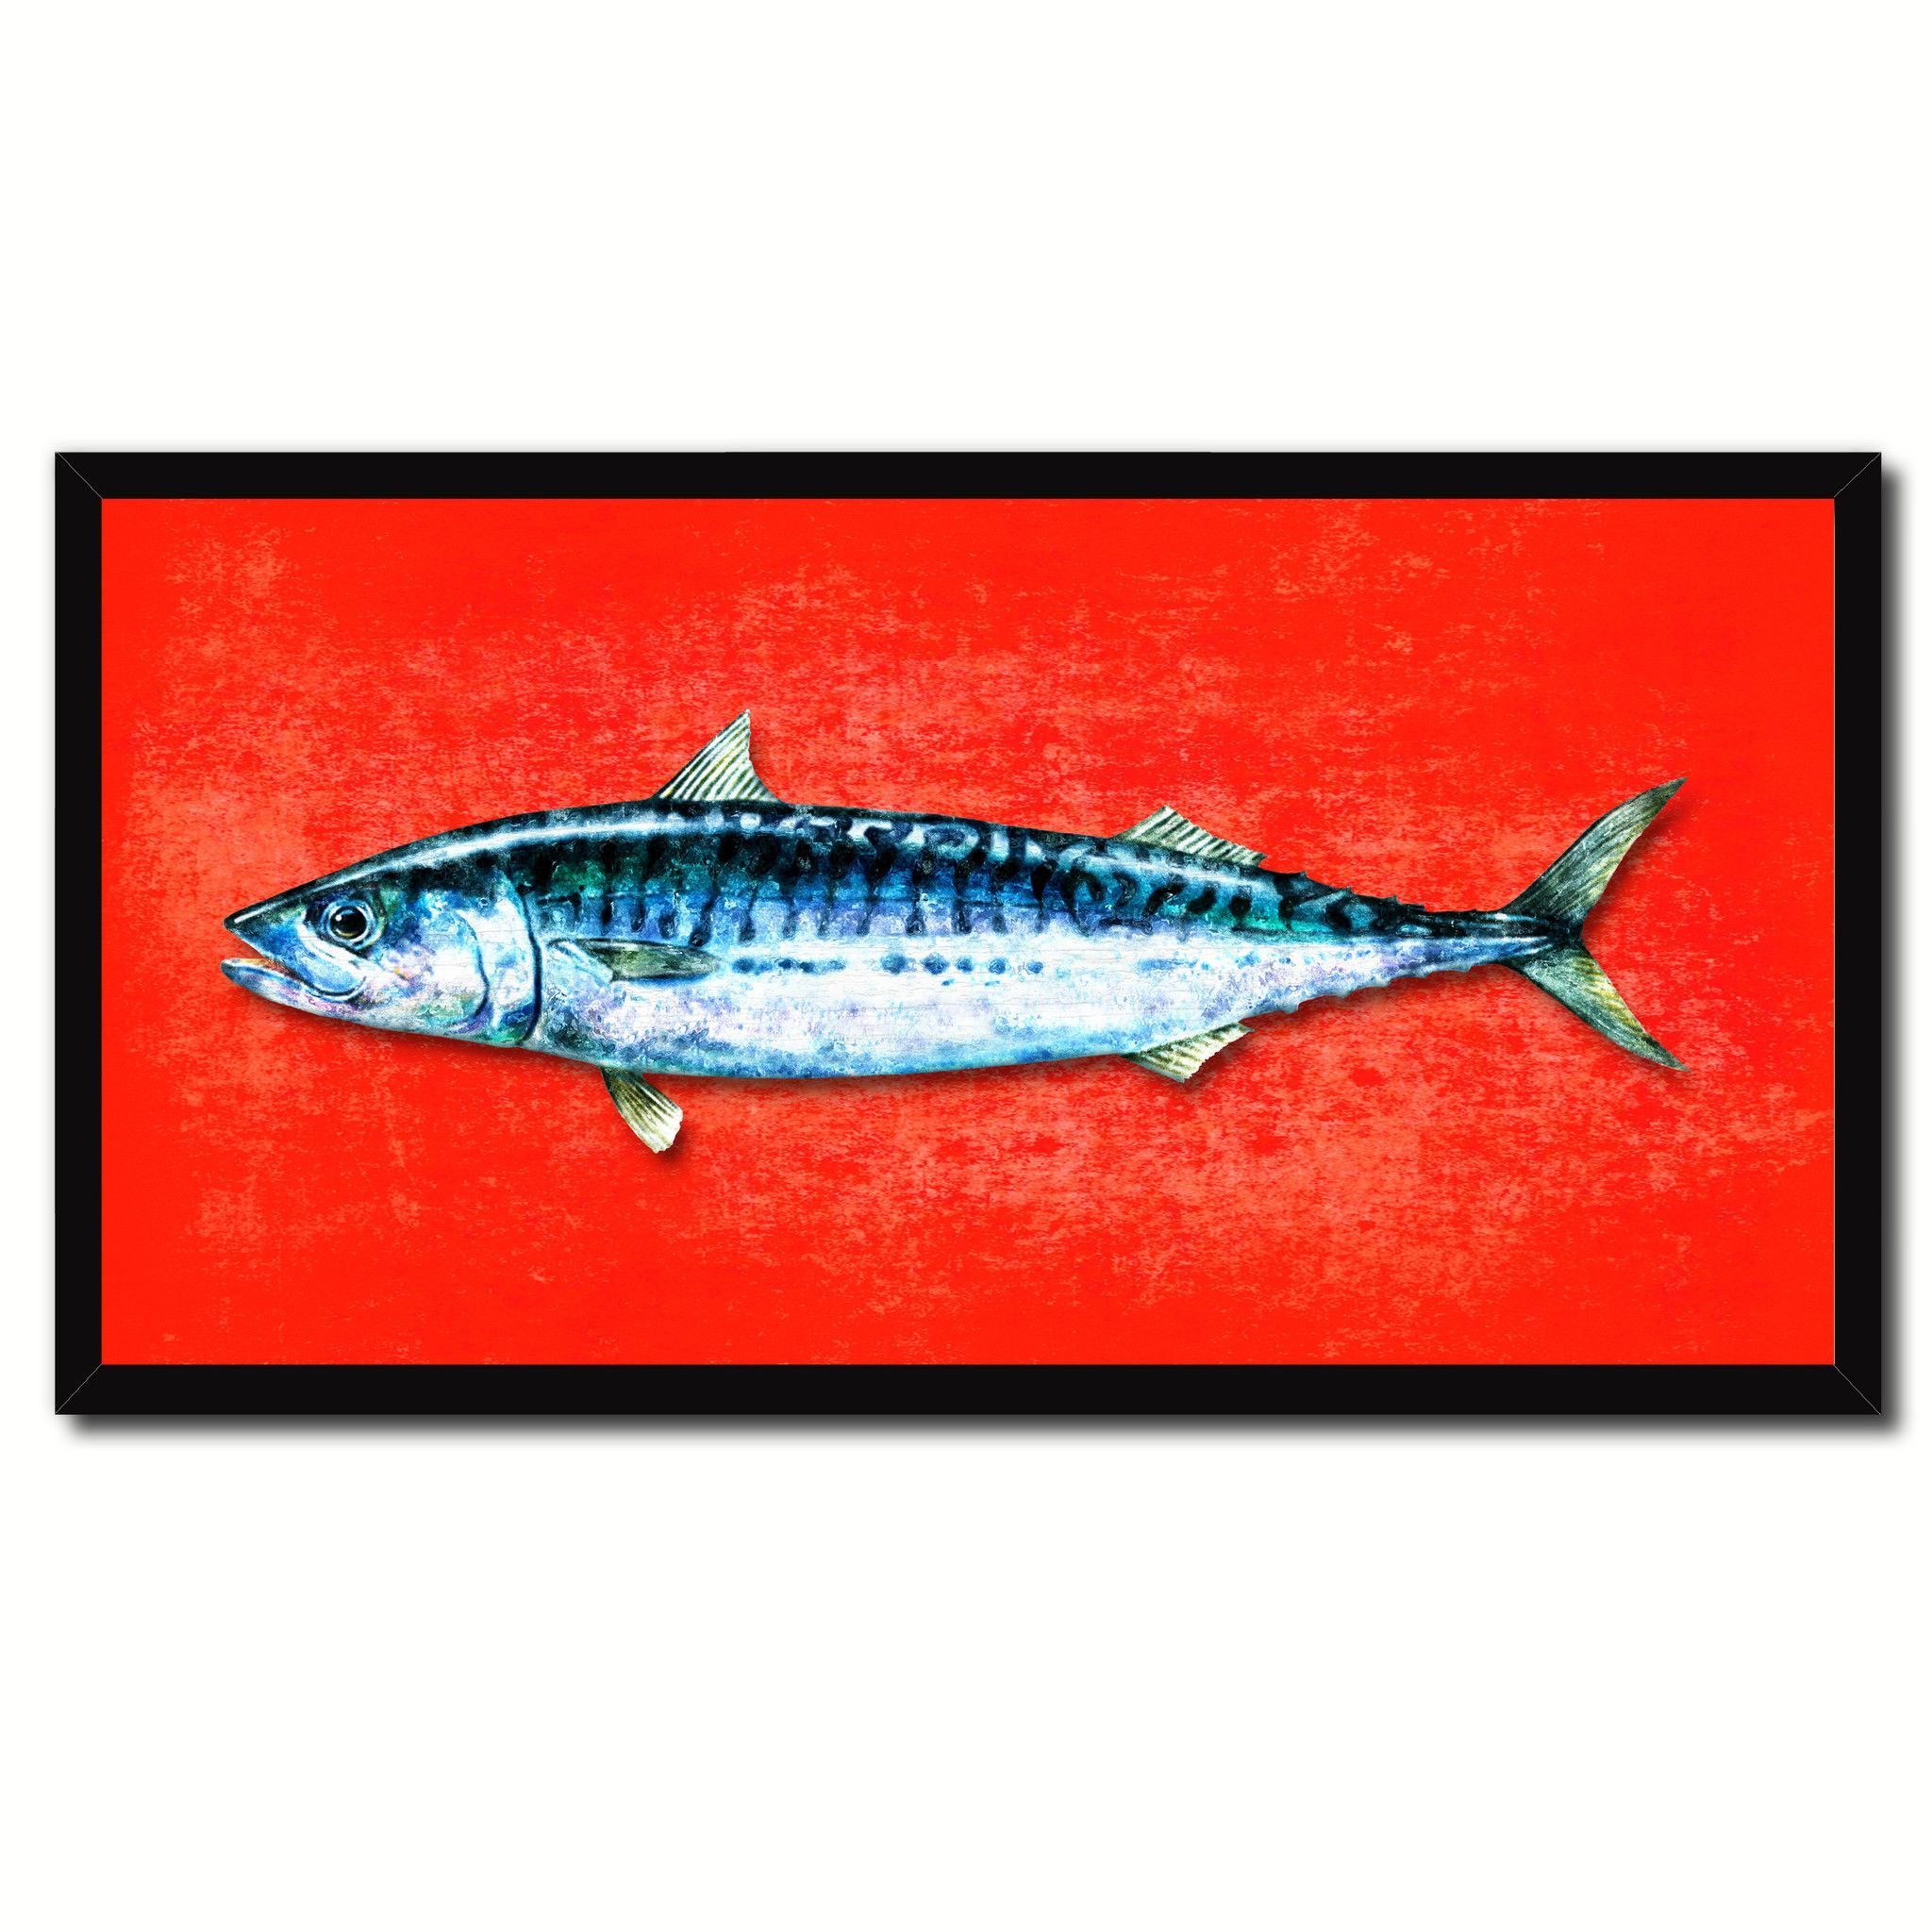 Nautical gifts for the home - Mackerel Fish Art Red Canvas Print Picture Frames Home Decor Nautical Fisherman Gifts